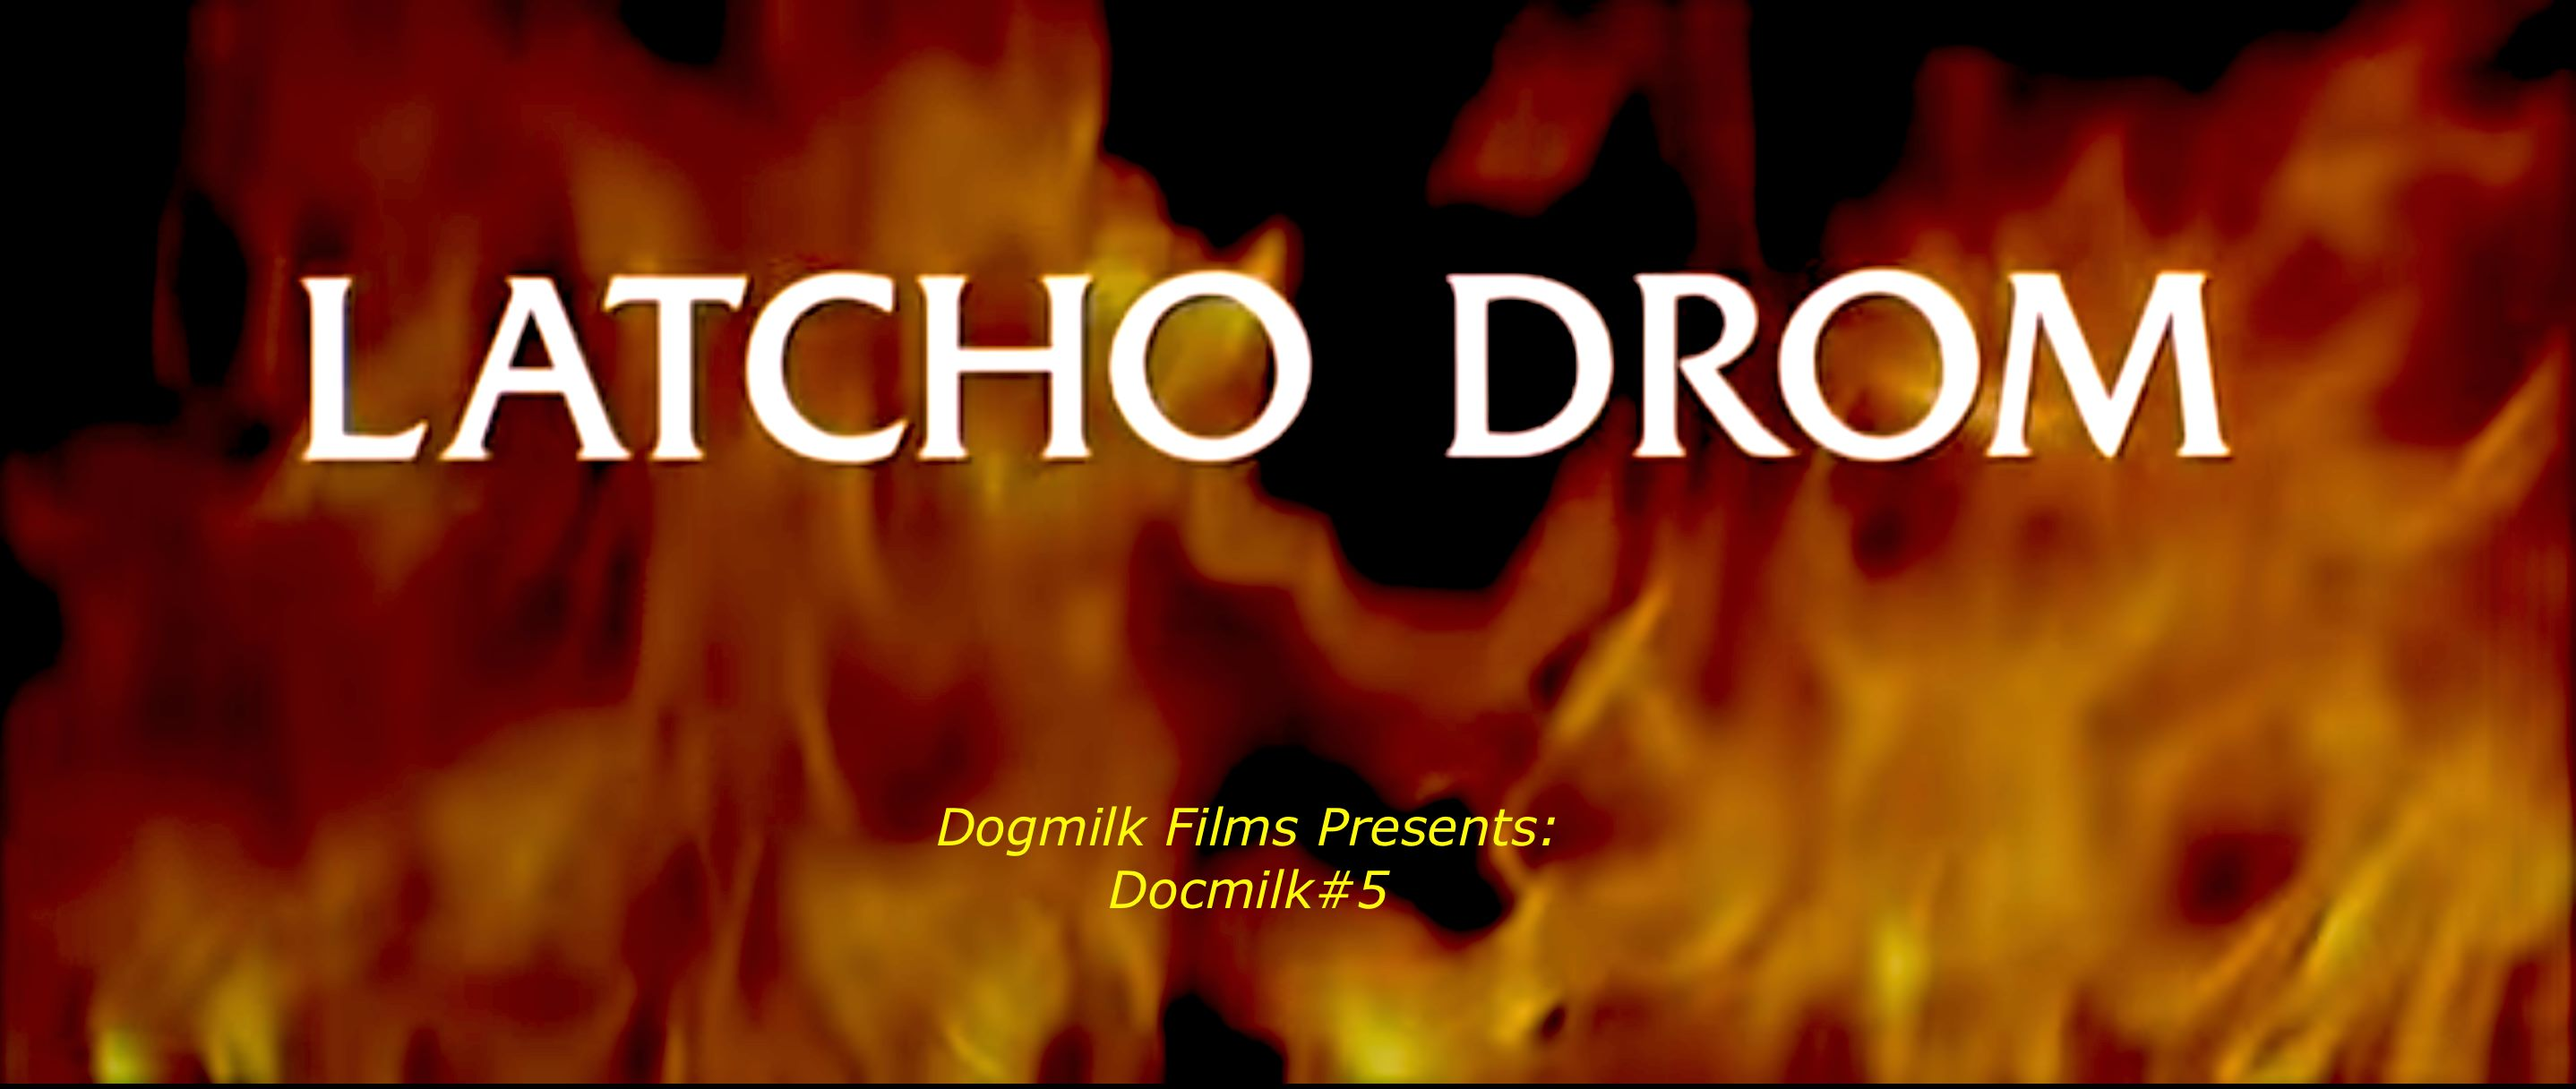 Dogmilk Presents Docmilk #5: Latcho Drom